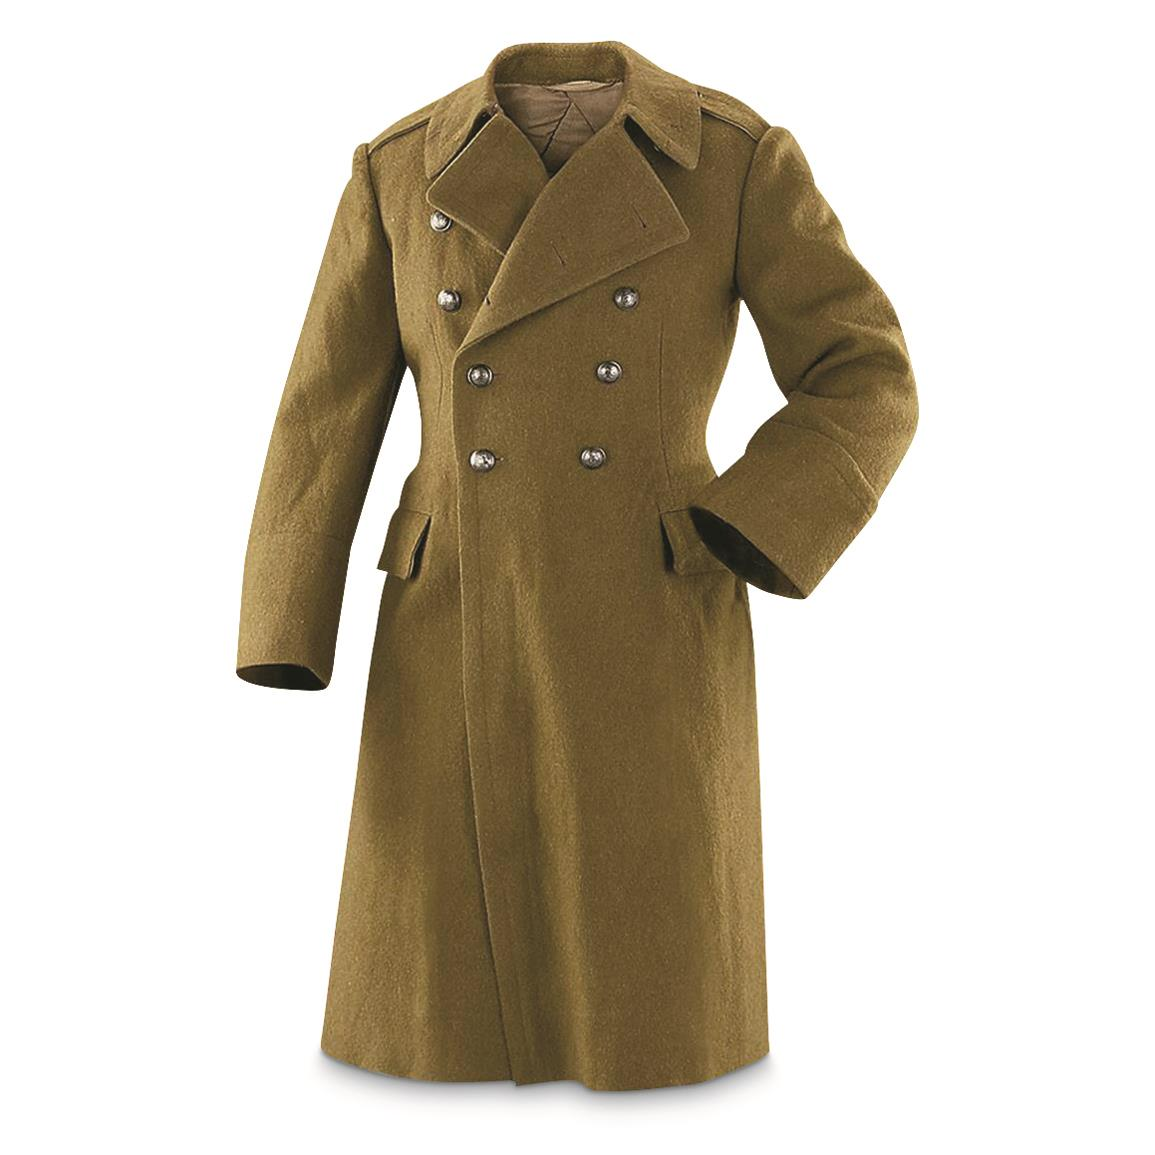 Romanian Military Surplus Wool Trench Coat, Like New, Olive Drab